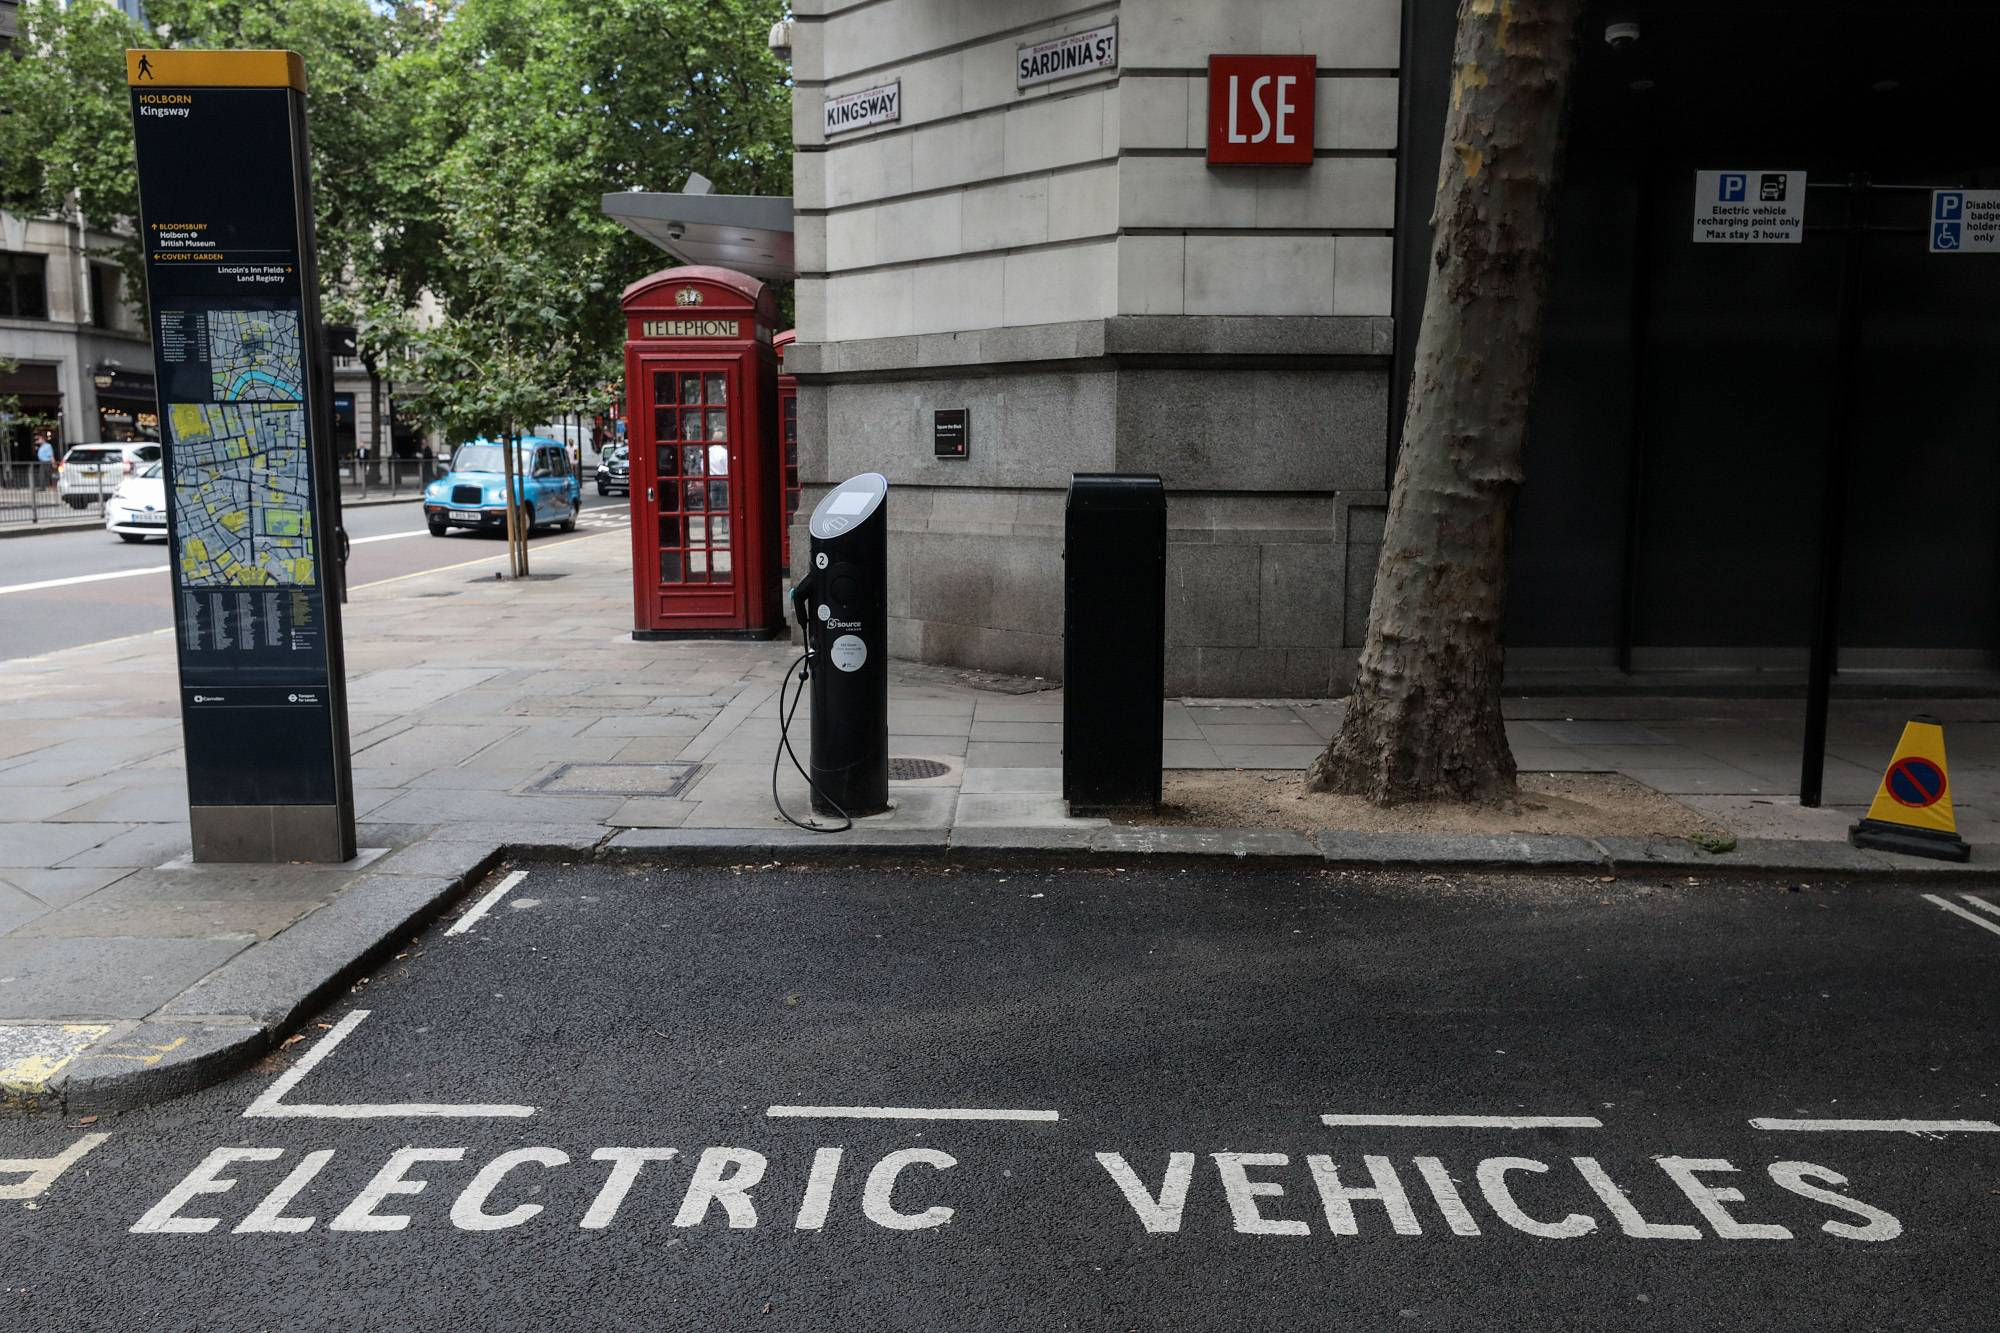 A parking area for electric vehicles in London.